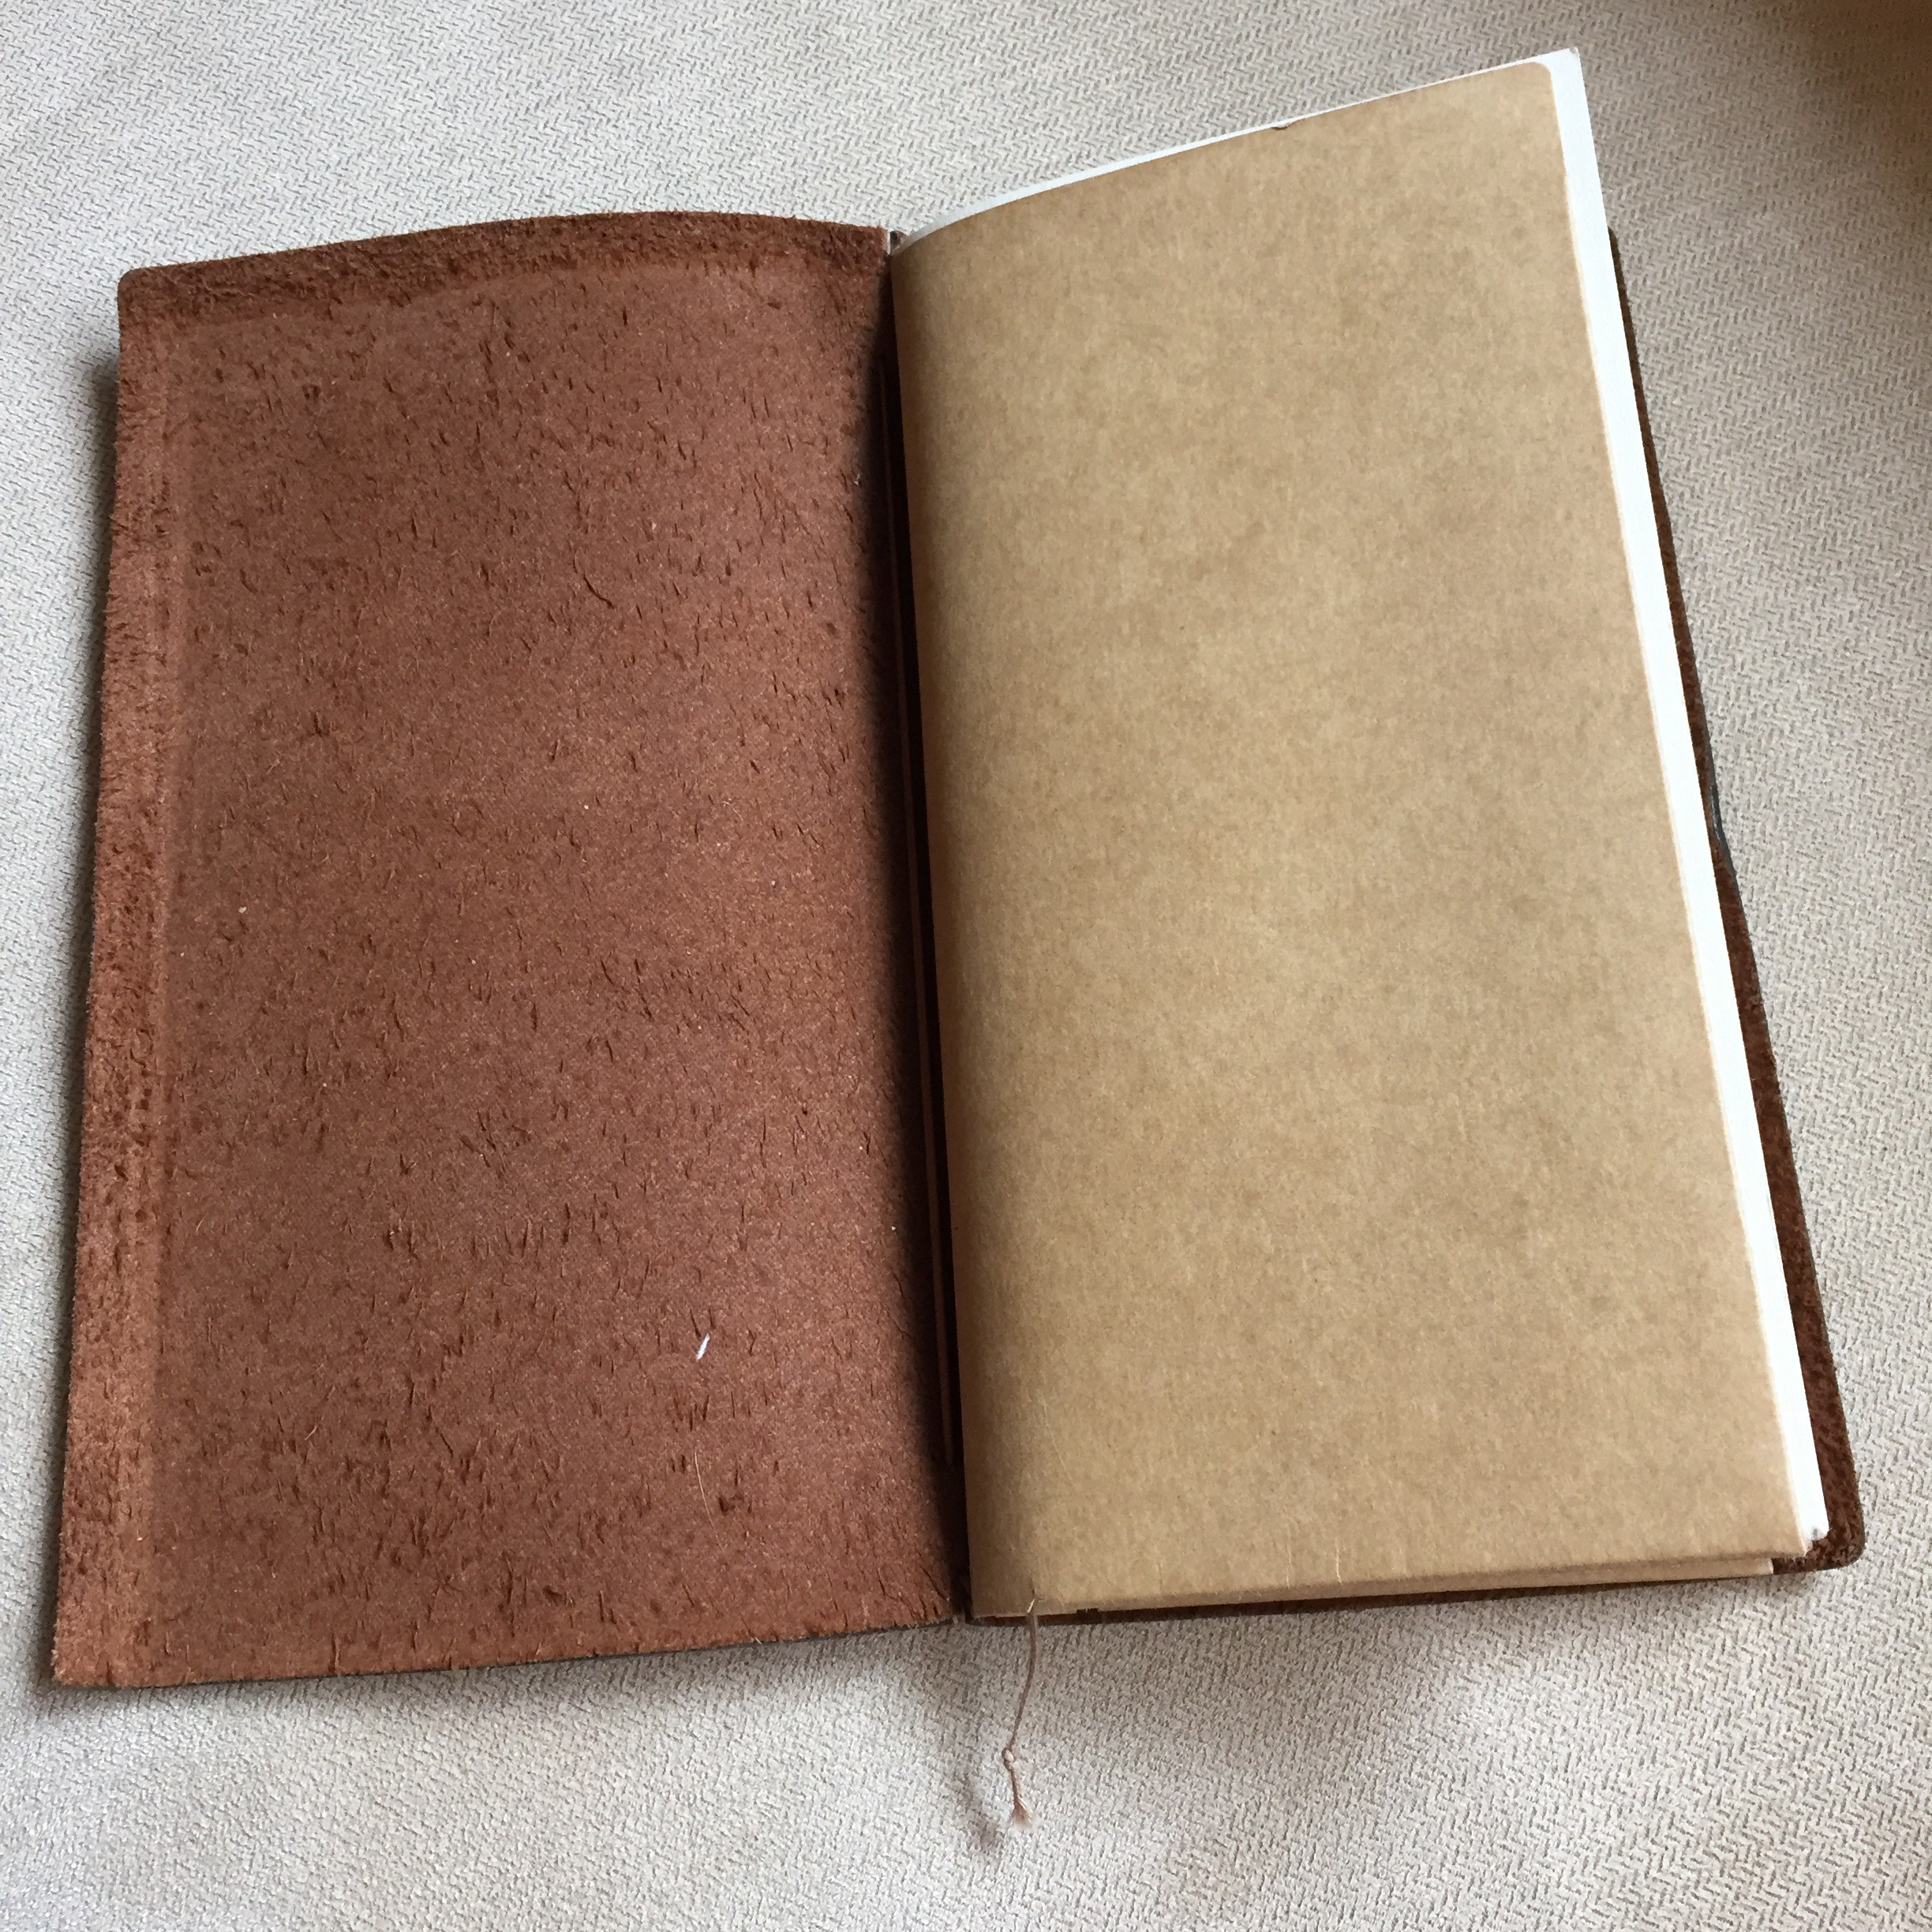 Inside front cover.